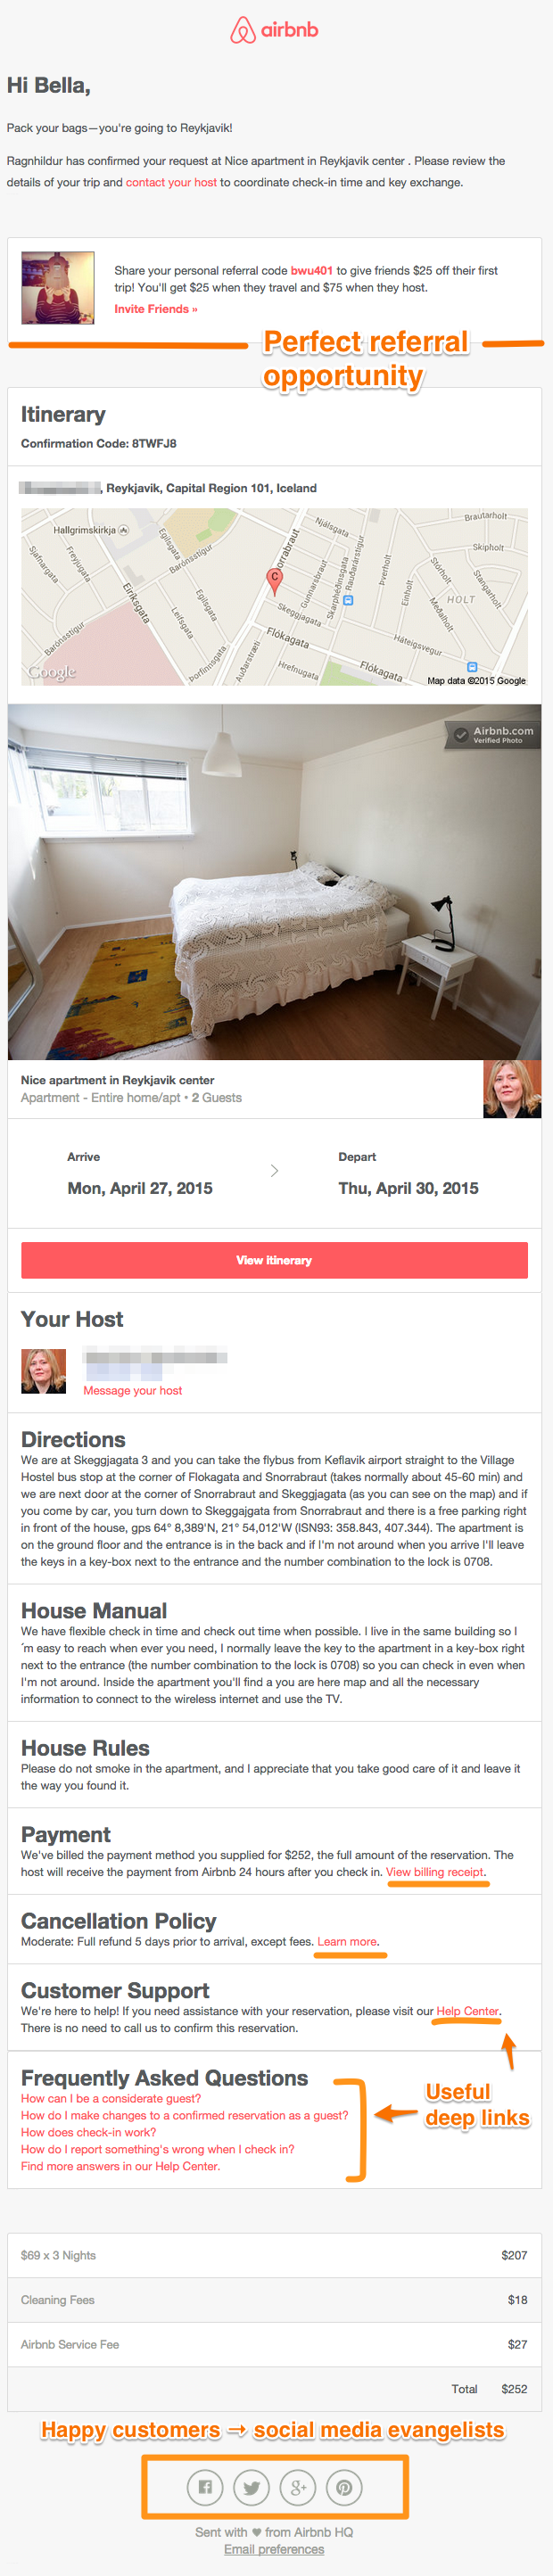 Airbnb's reservation confirmation email